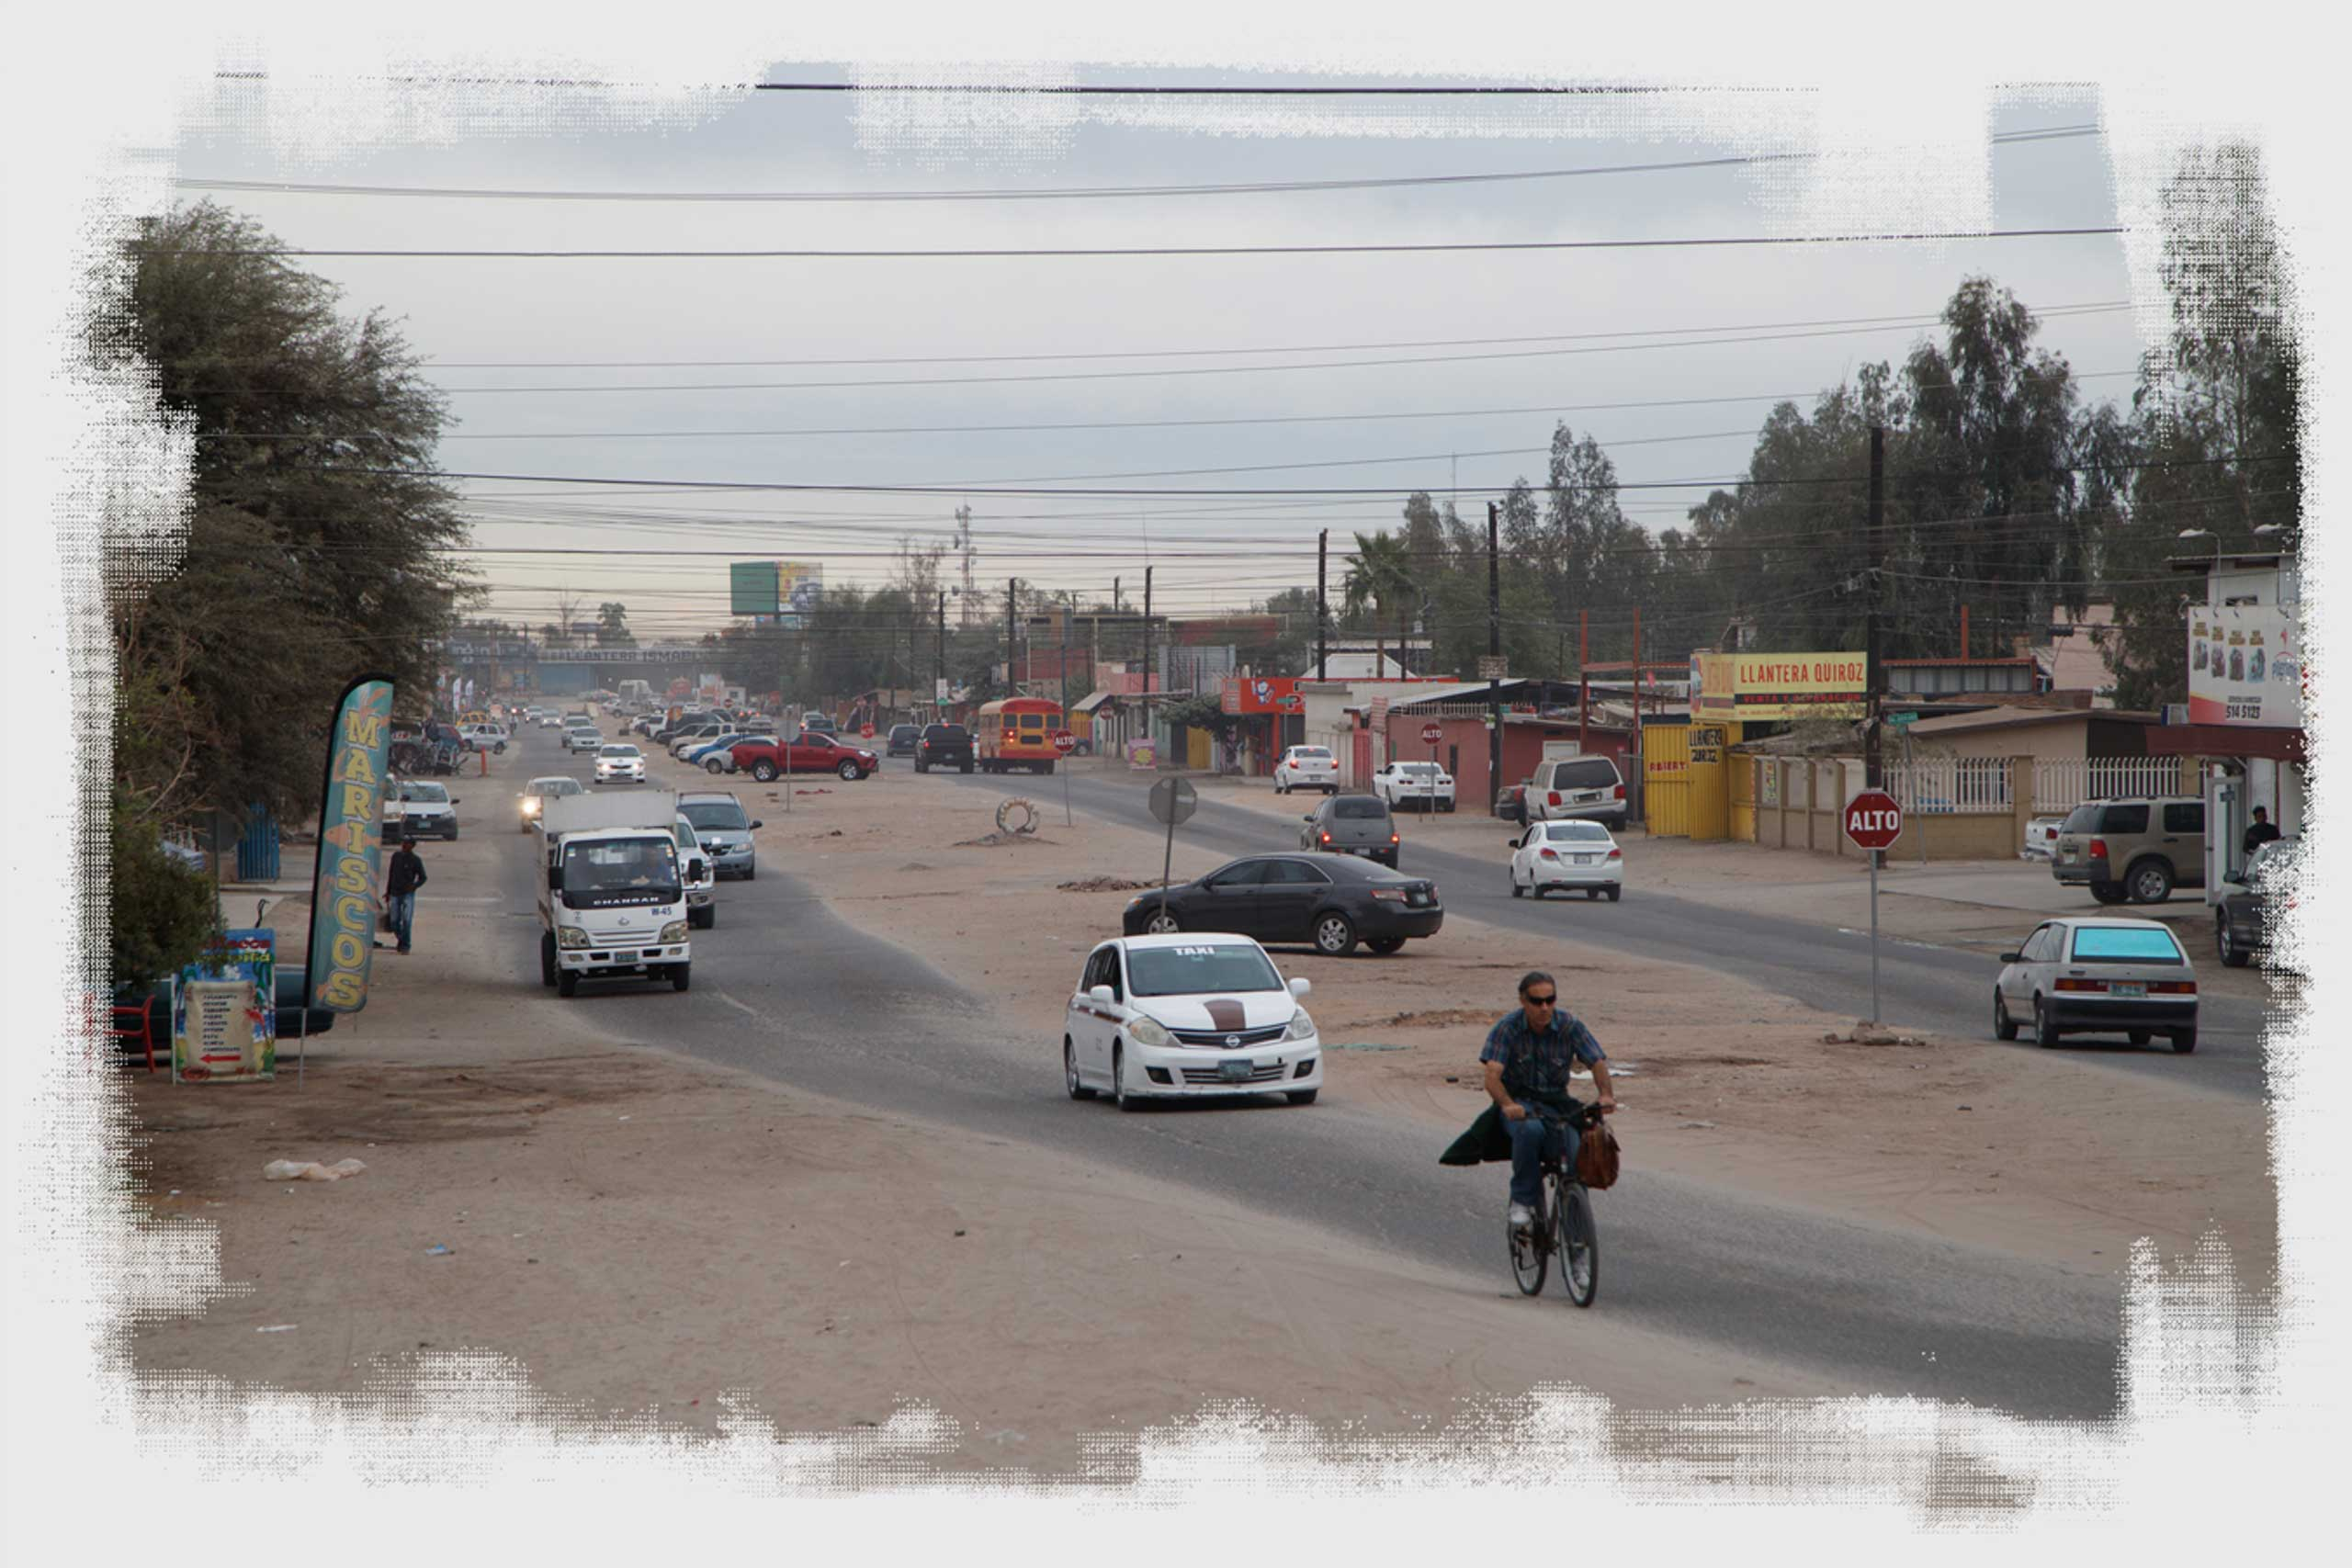 A man rides a bicycle on a busy street in the neighborhood Colonia Vicente Guerrero in Mexicali.